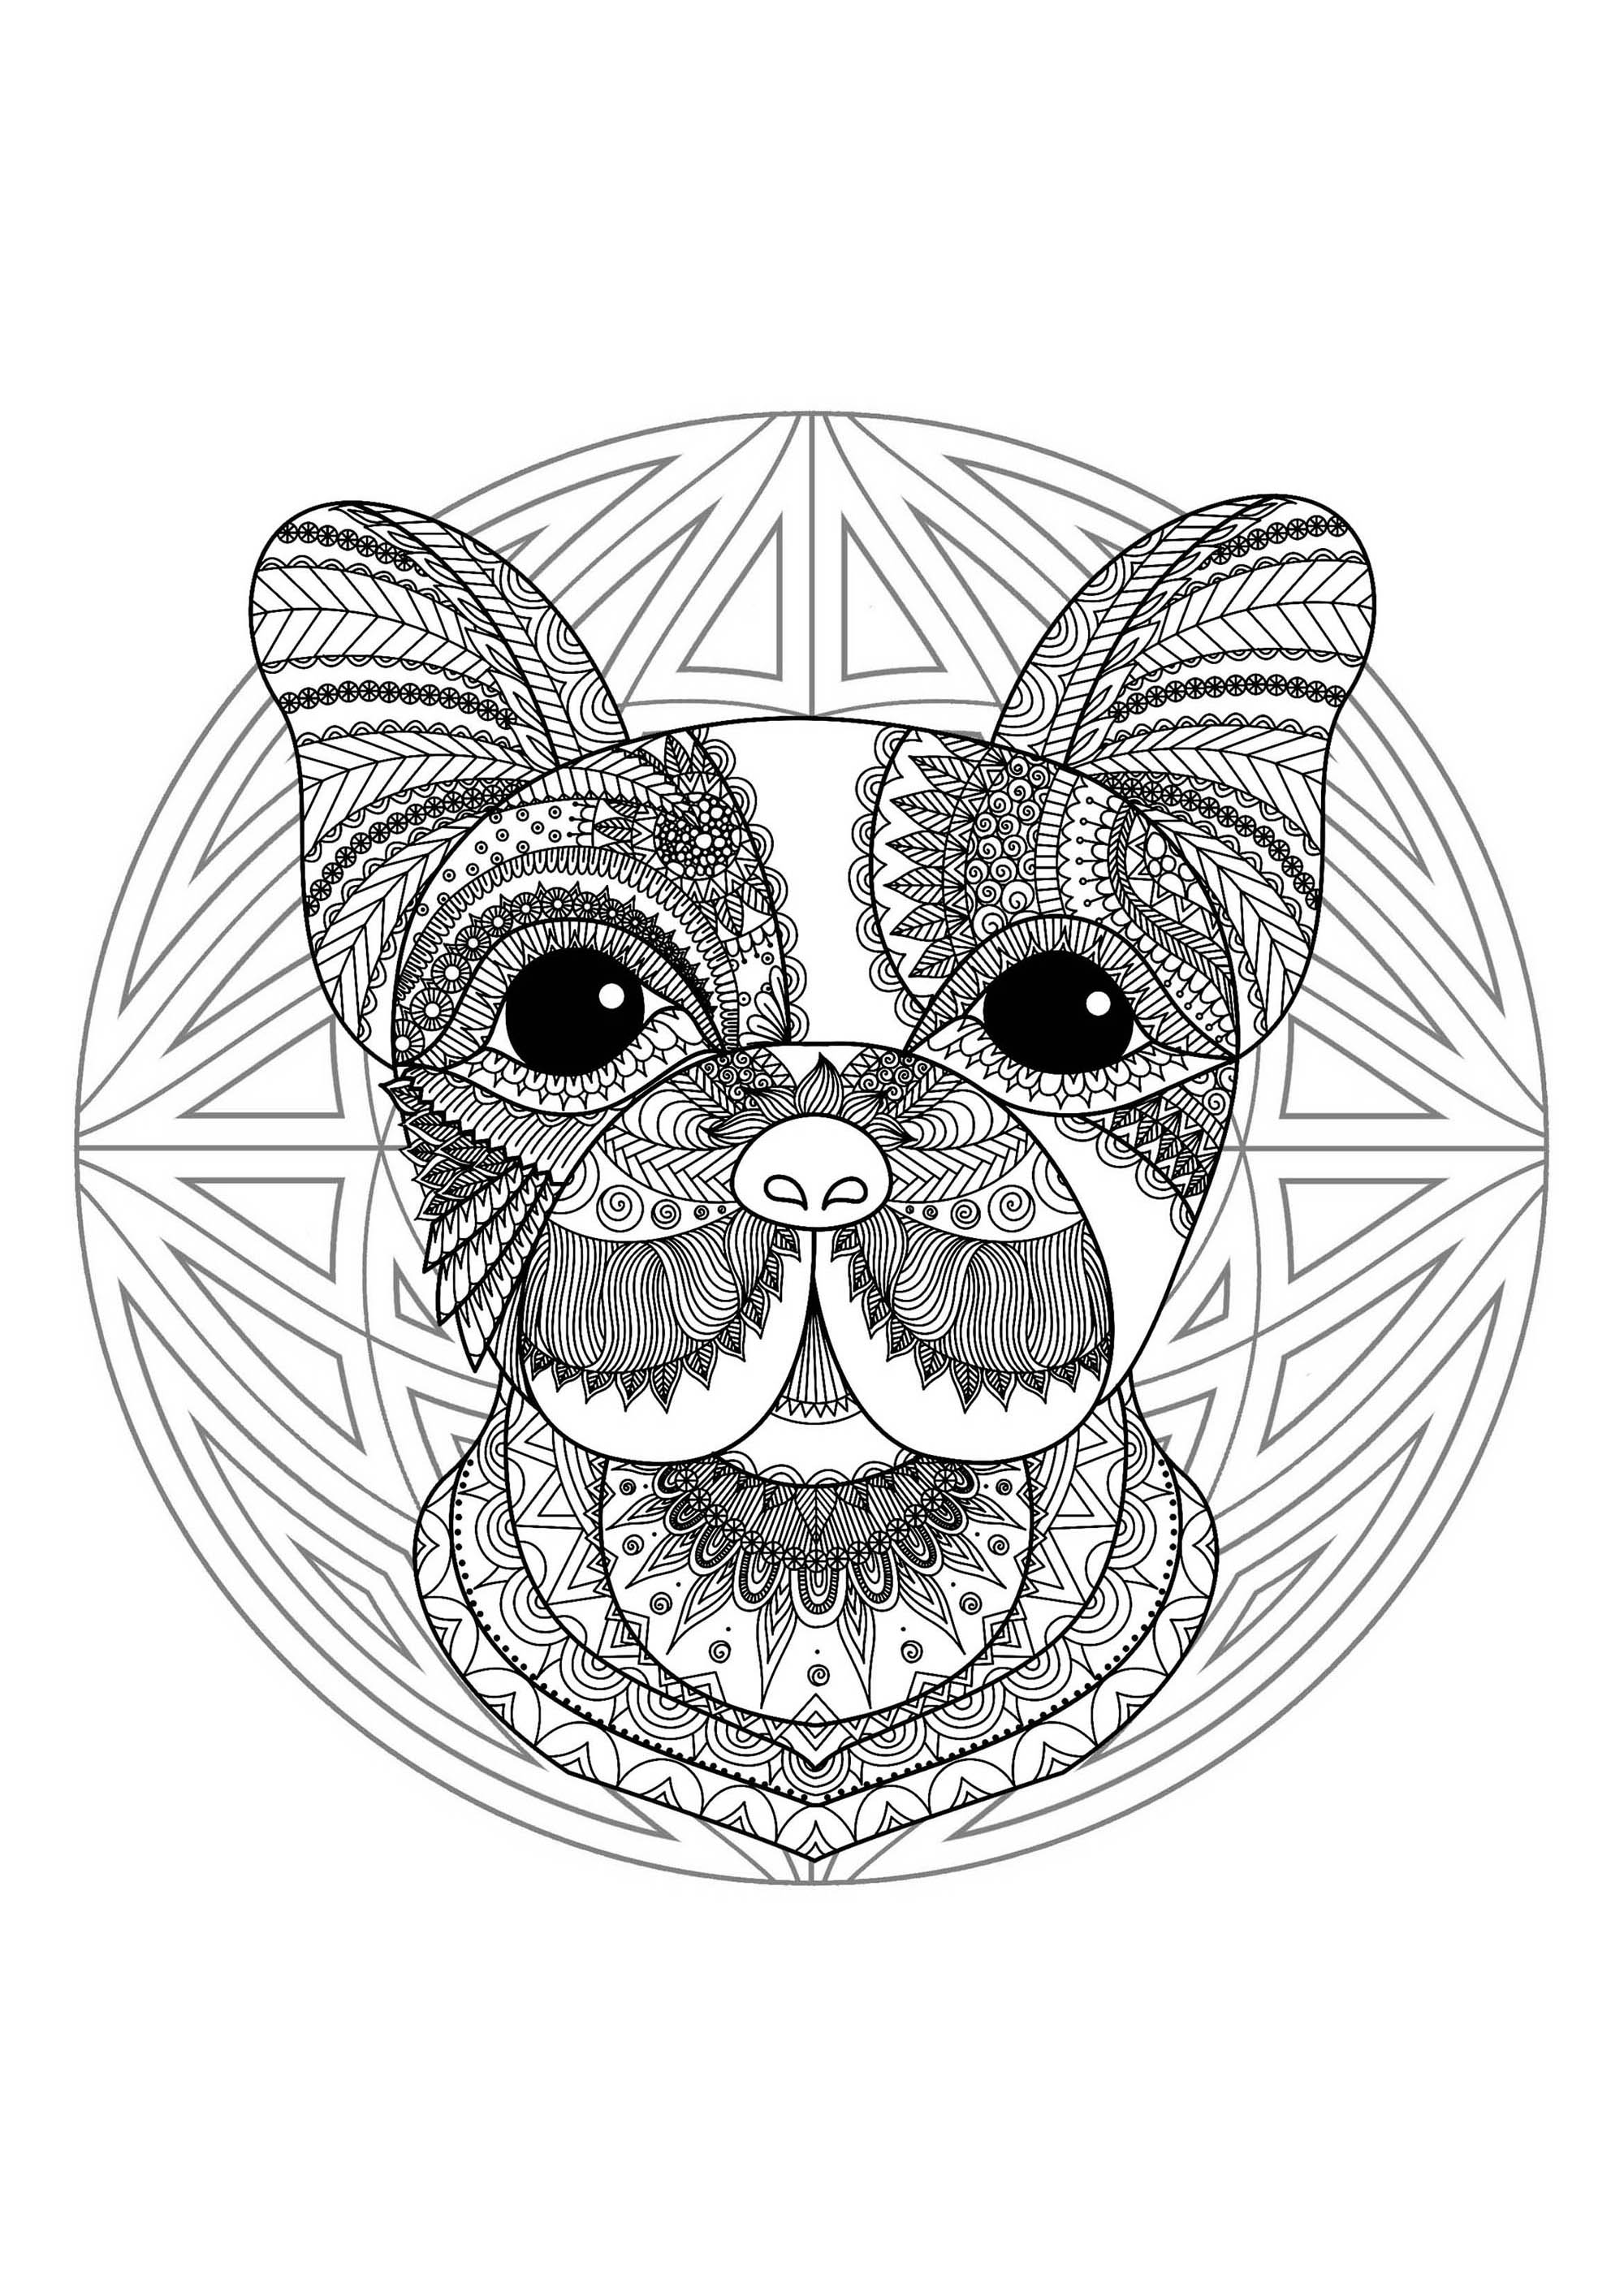 Mandala with cute Dog head and geometric patterns M alas